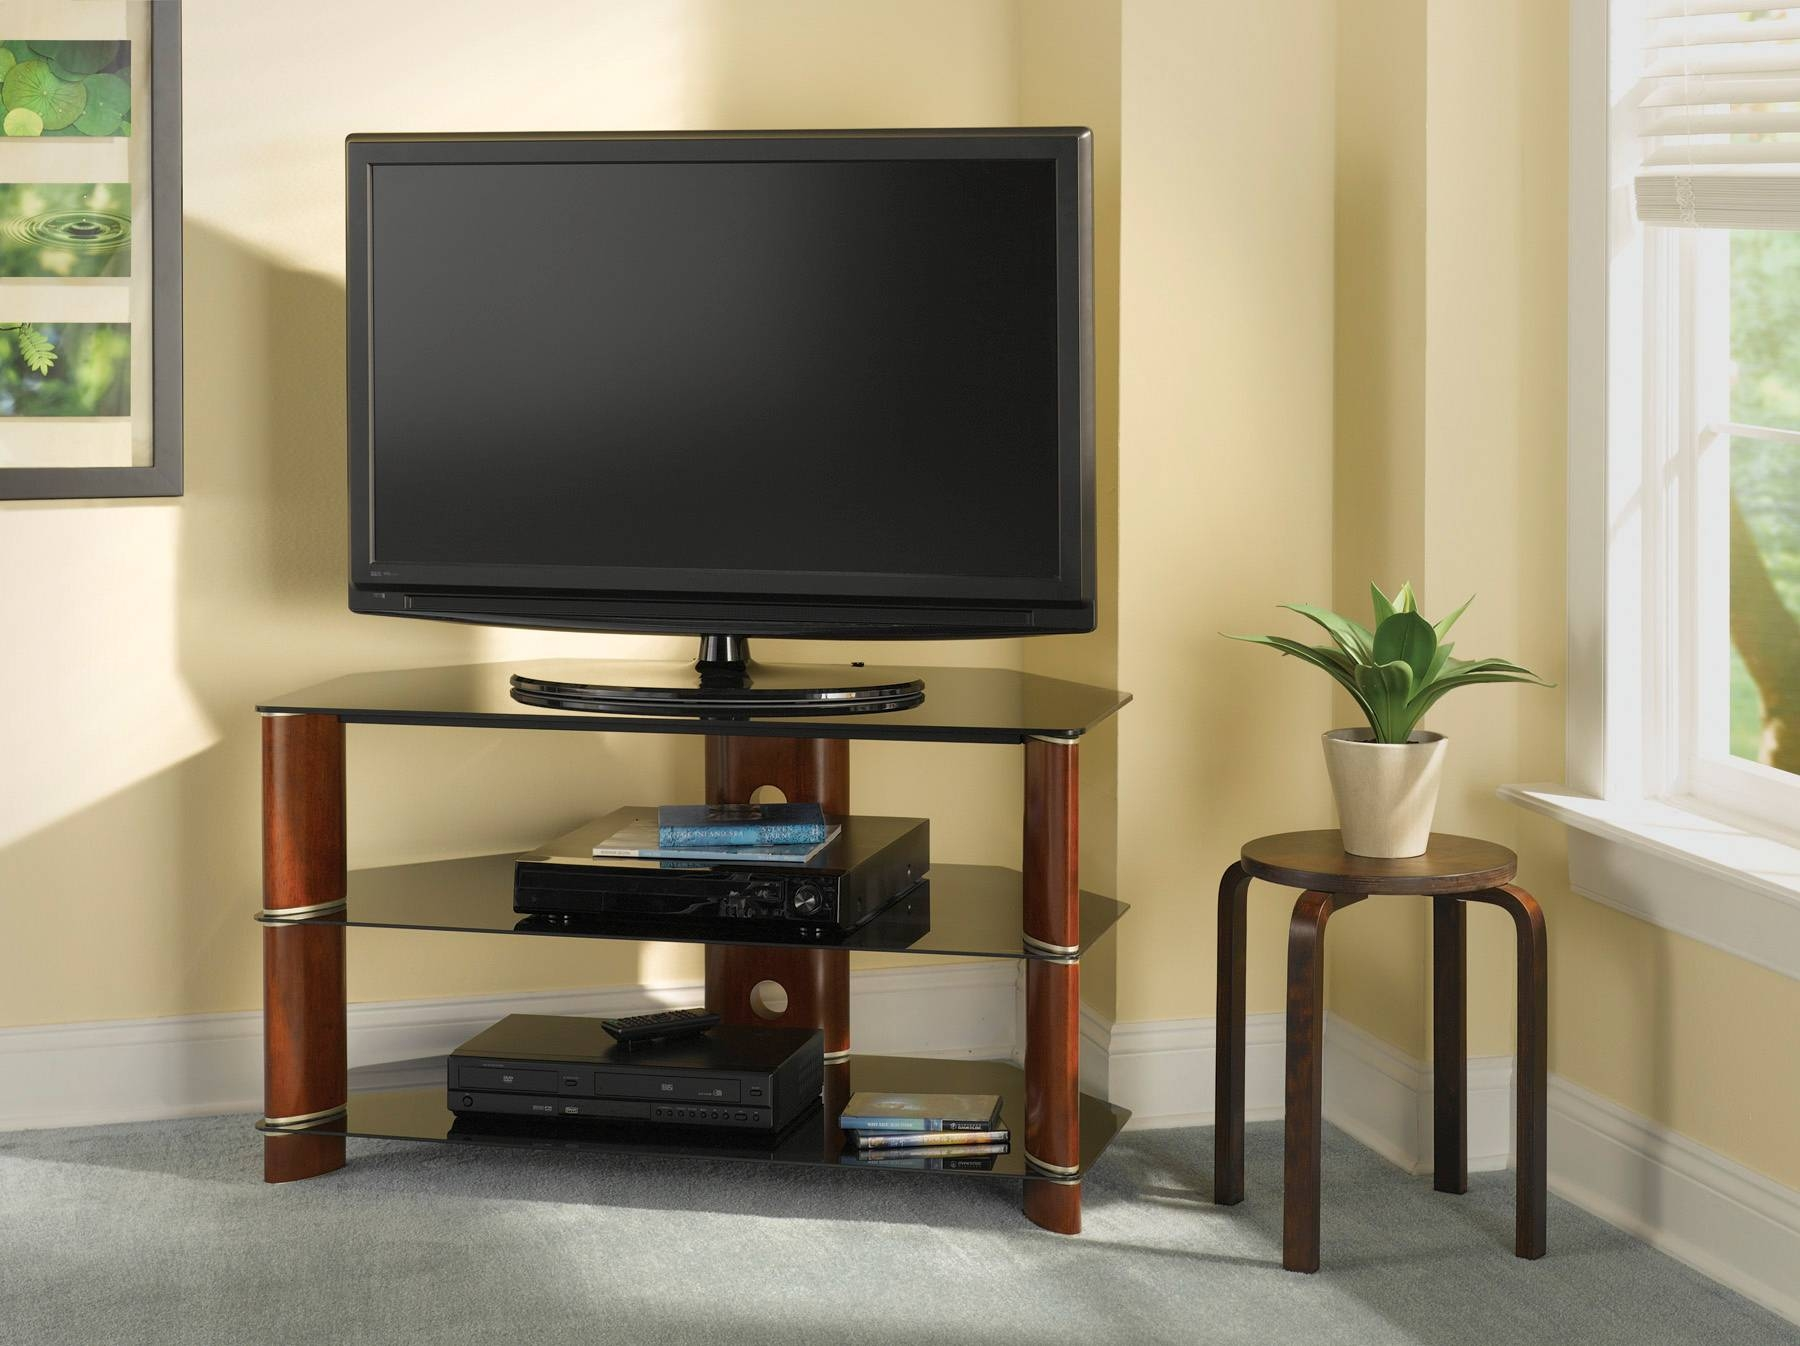 Corner Tv Stands For Flat Screen Tv – Furniture Depot throughout Triangular Tv Stands (Image 5 of 15)